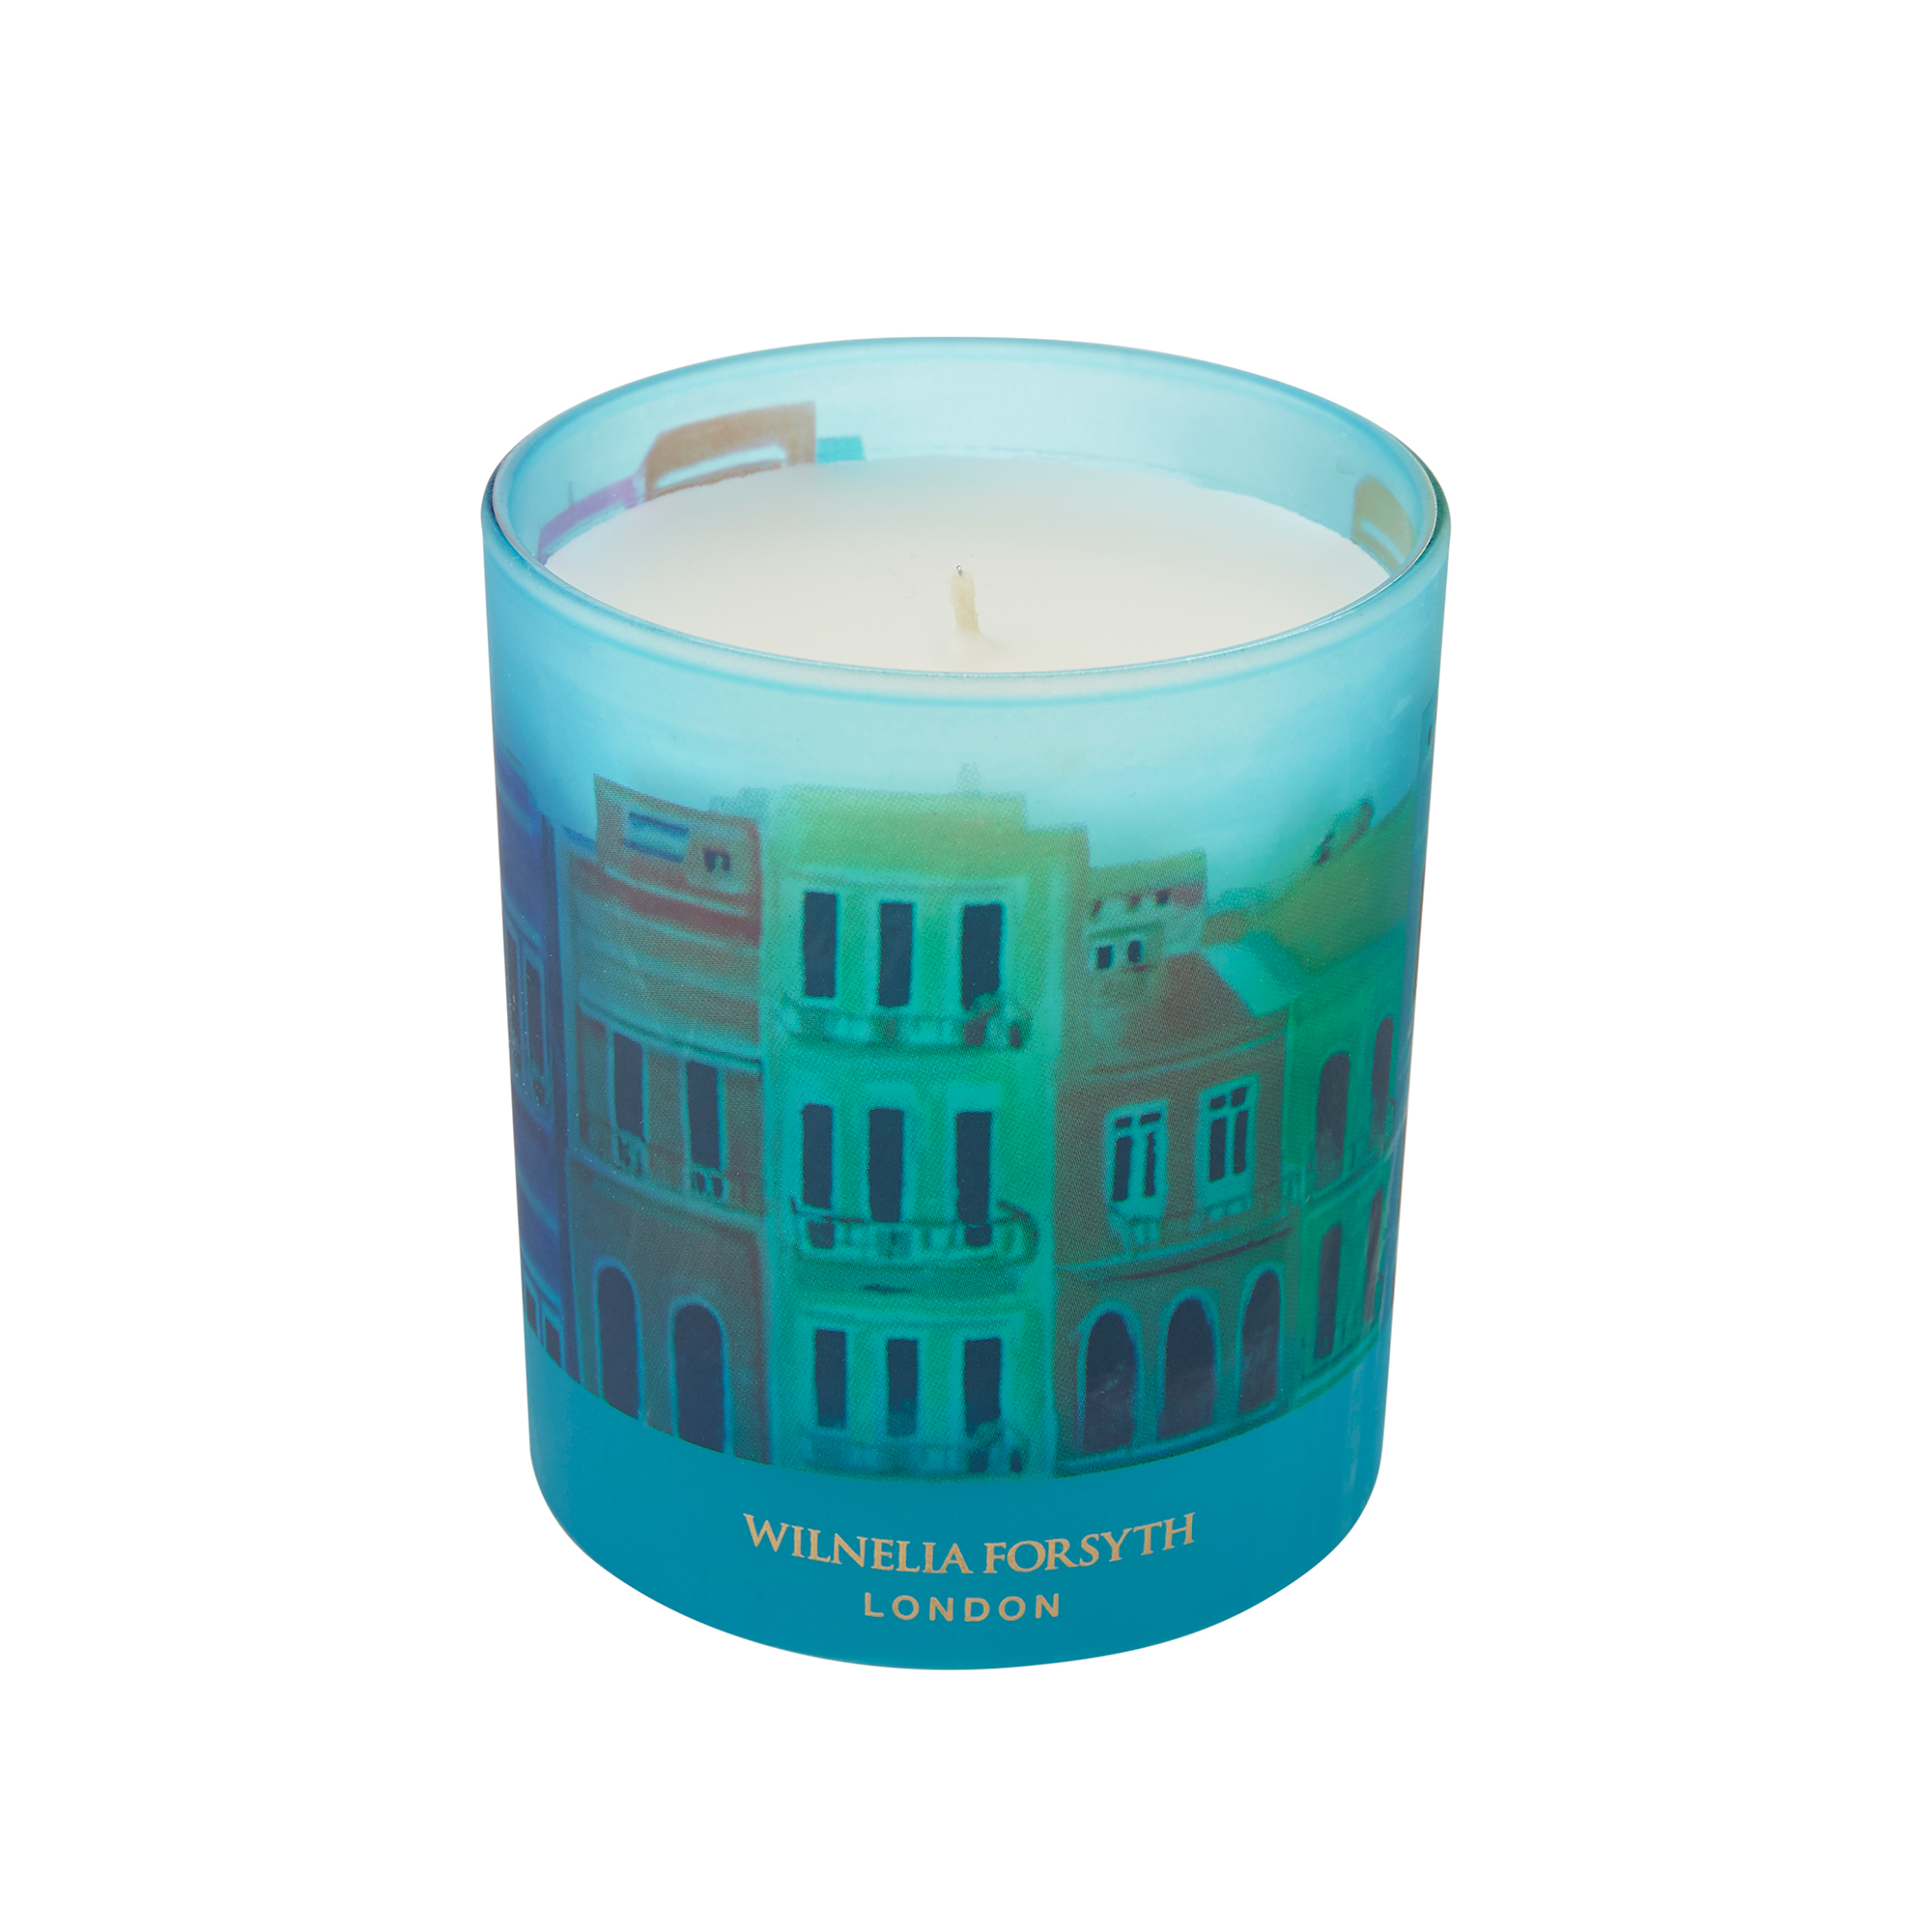 Valle De Collores – Wilnelia Forsyth Candles